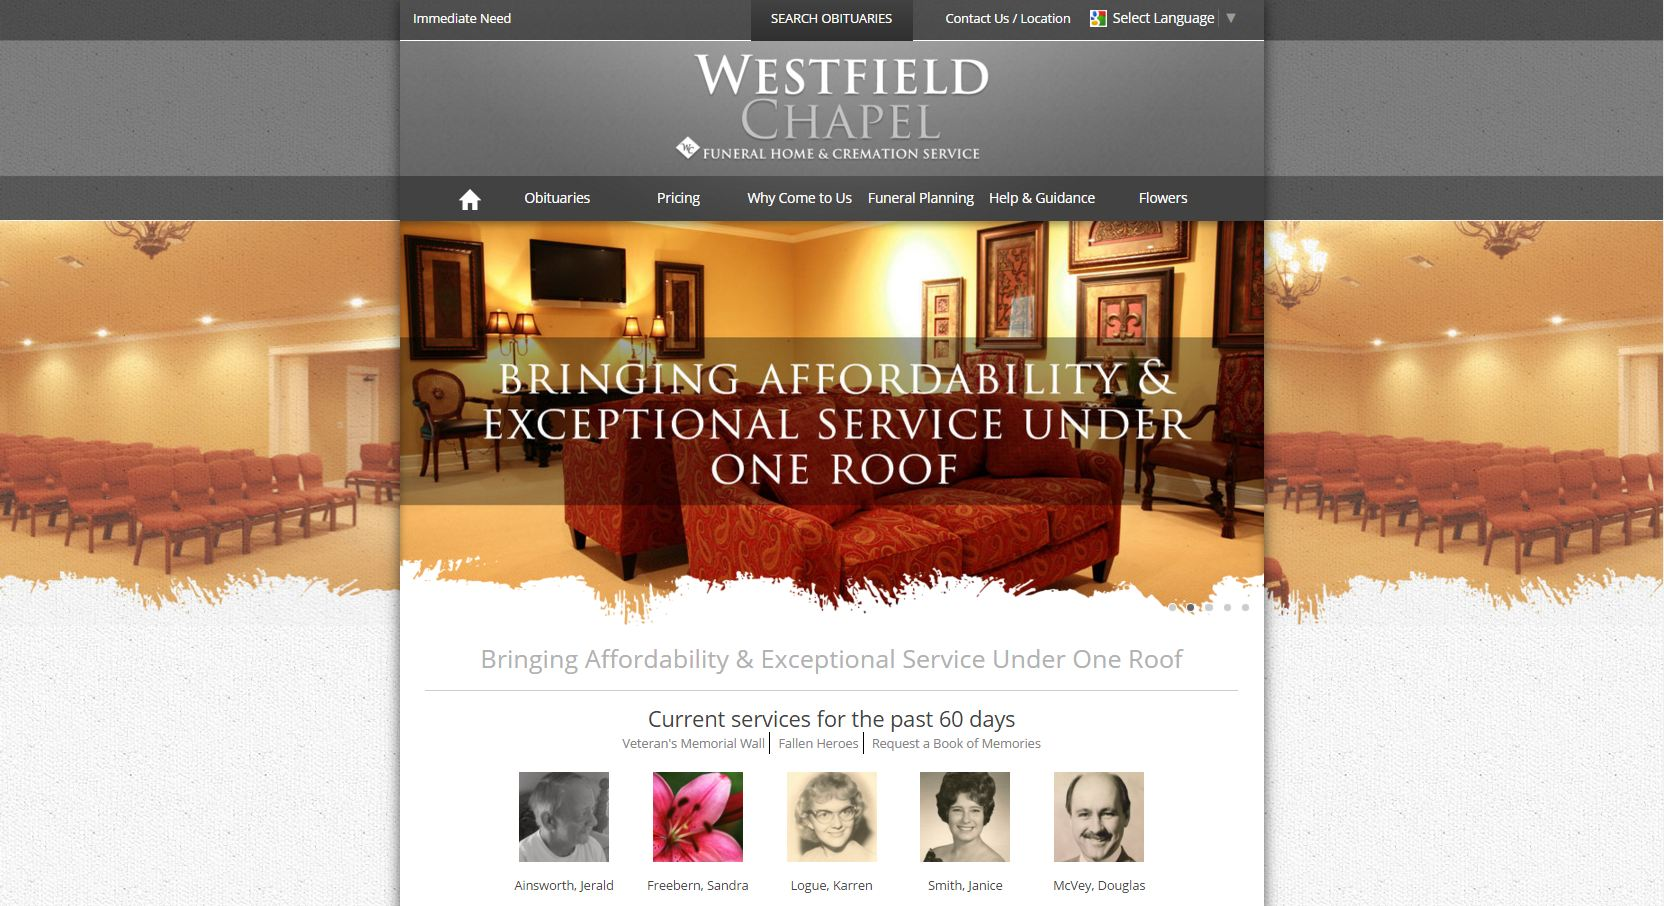 20 stand-out funeral home website designs from 2015 that have